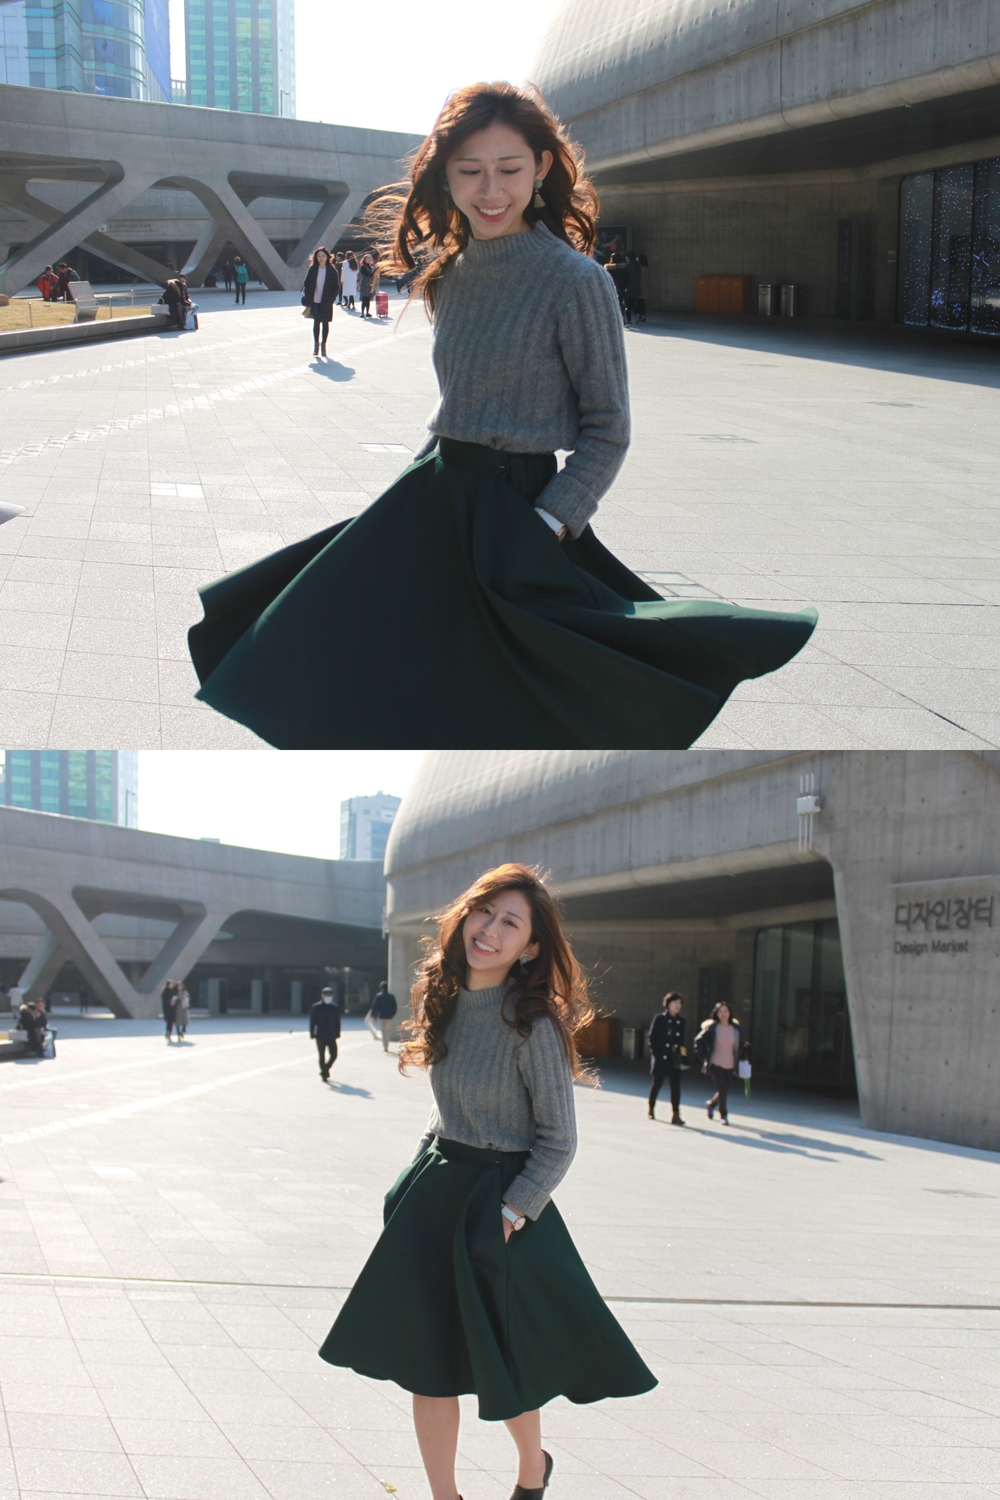 Korea grey Sweater Top / Amber (HK) green midi-skirt / DearPostman green earrings #001 /  Staccato  black cut-out pointed heels